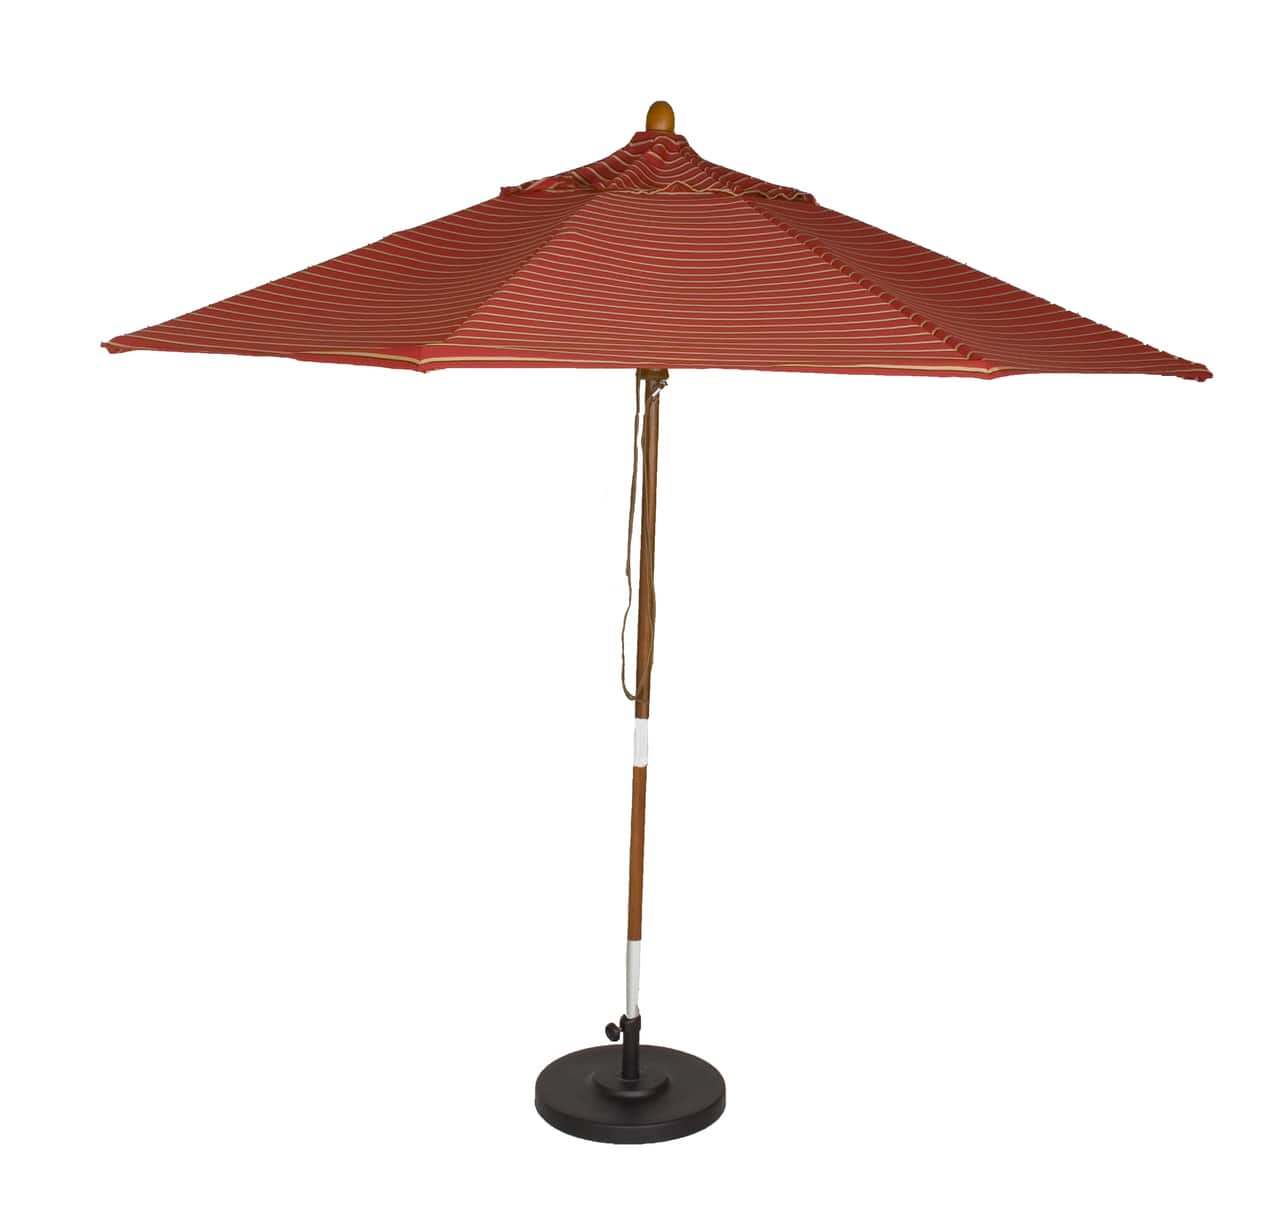 Phat Tommy - $80 Off 9 ft. Marenti Wood Outdoor Sunbrella (Various Colors) + F/S $139.95